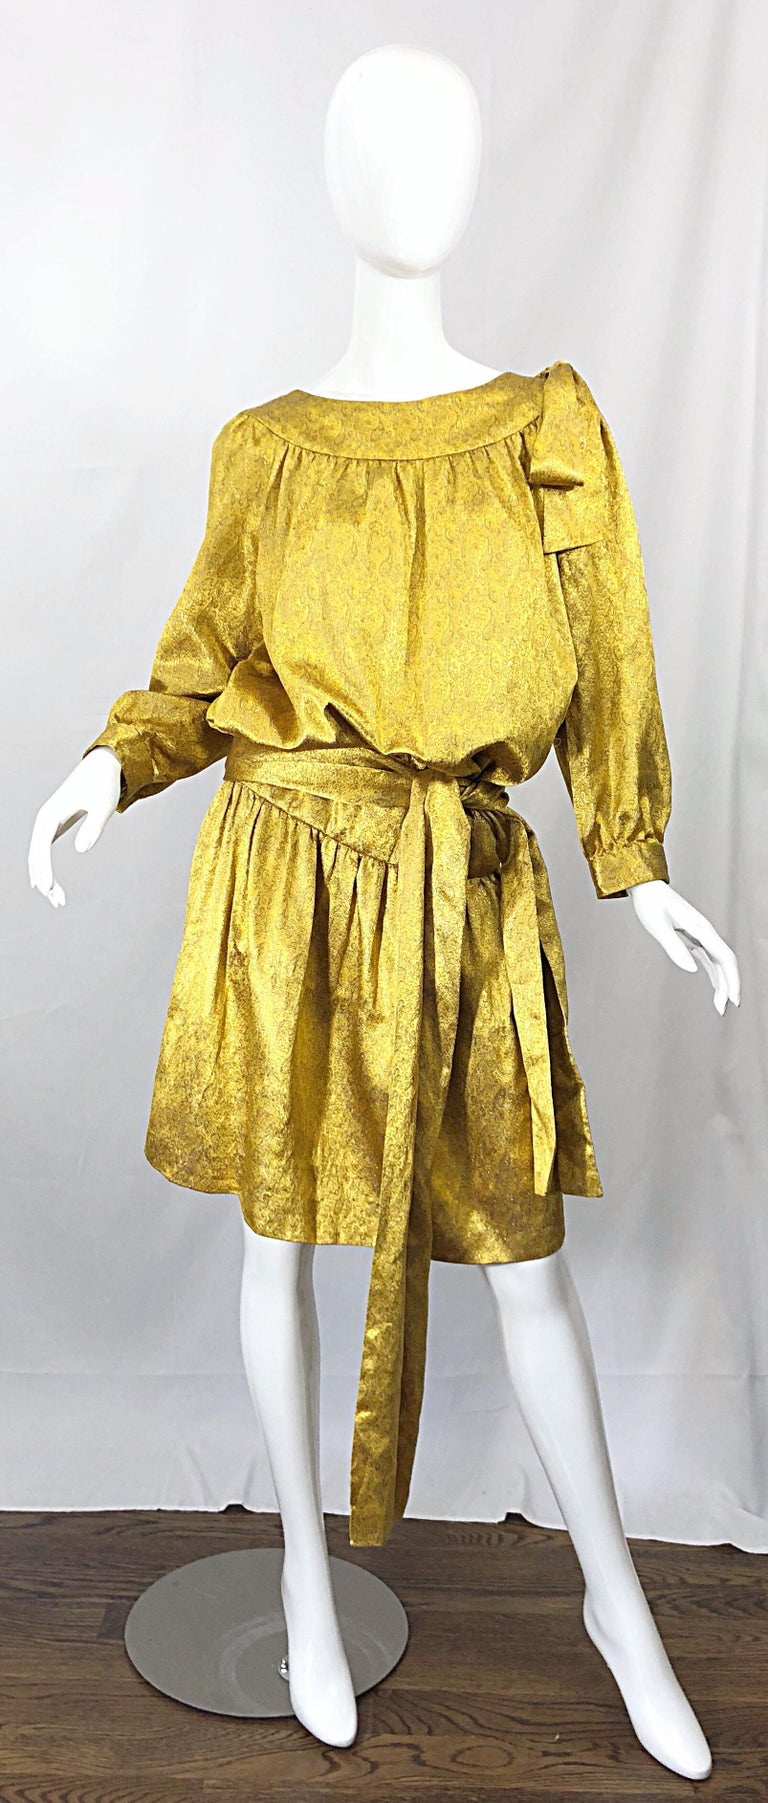 Vintage Brioni Yellow + Gold Silk 1920s Style Drop Waist Dress + Turban Sash For Sale 9